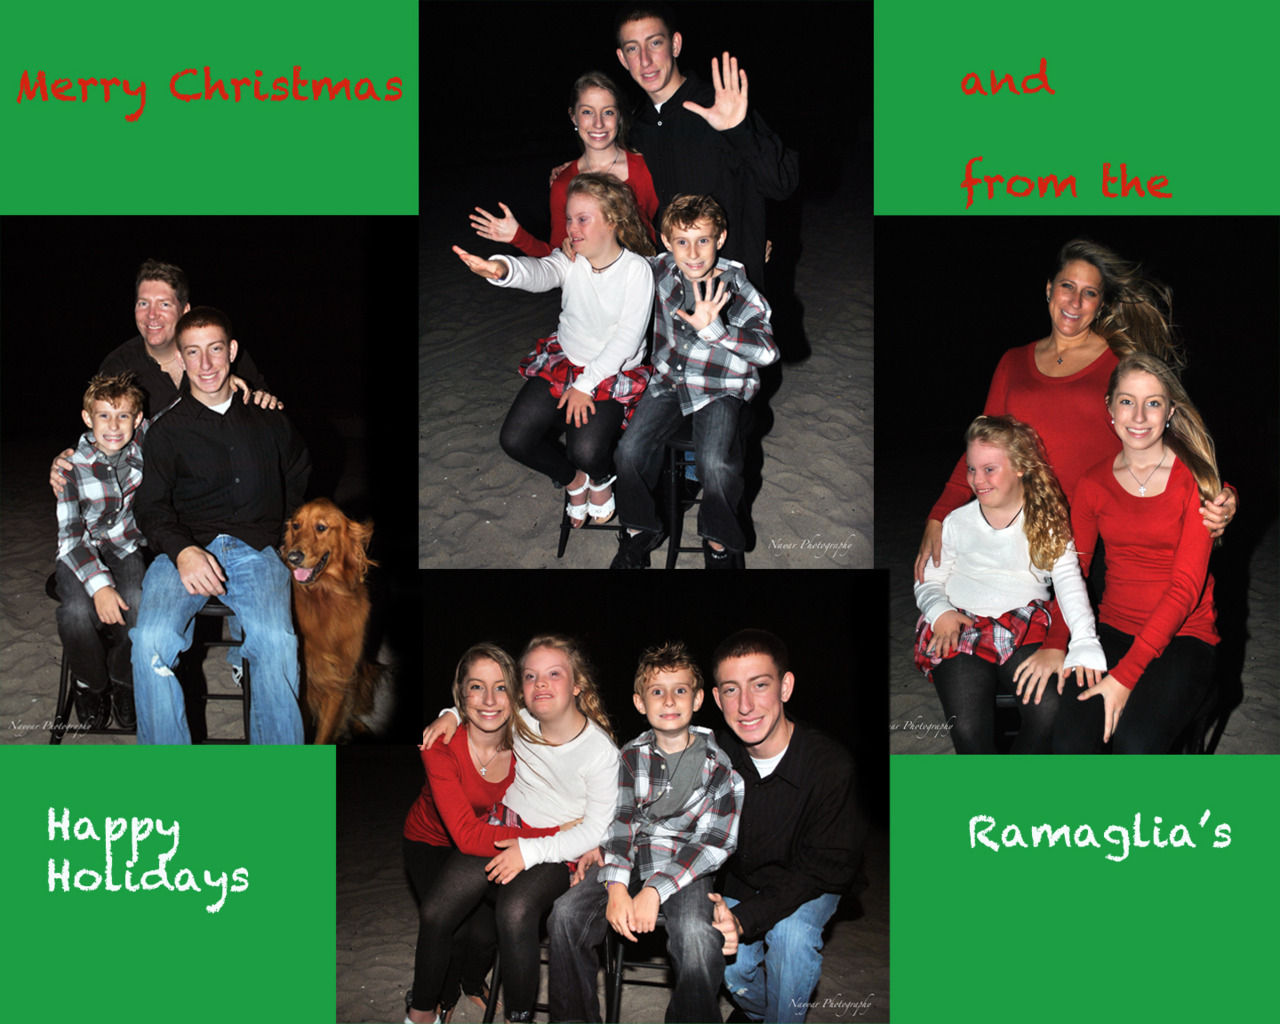 Happy Holidays from the Ramaglia's!